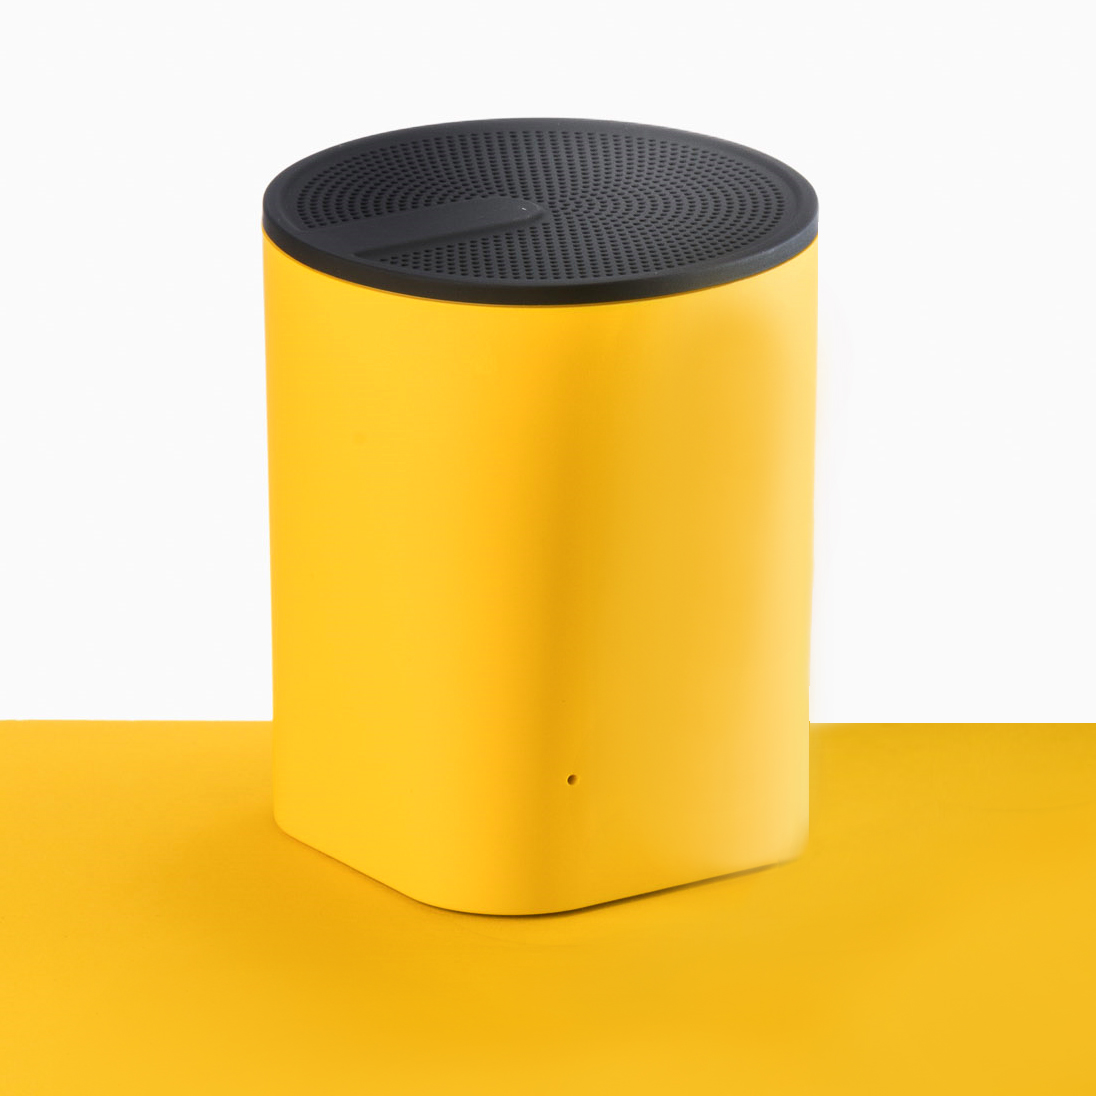 Yellow Colour Sound Compact Speaker